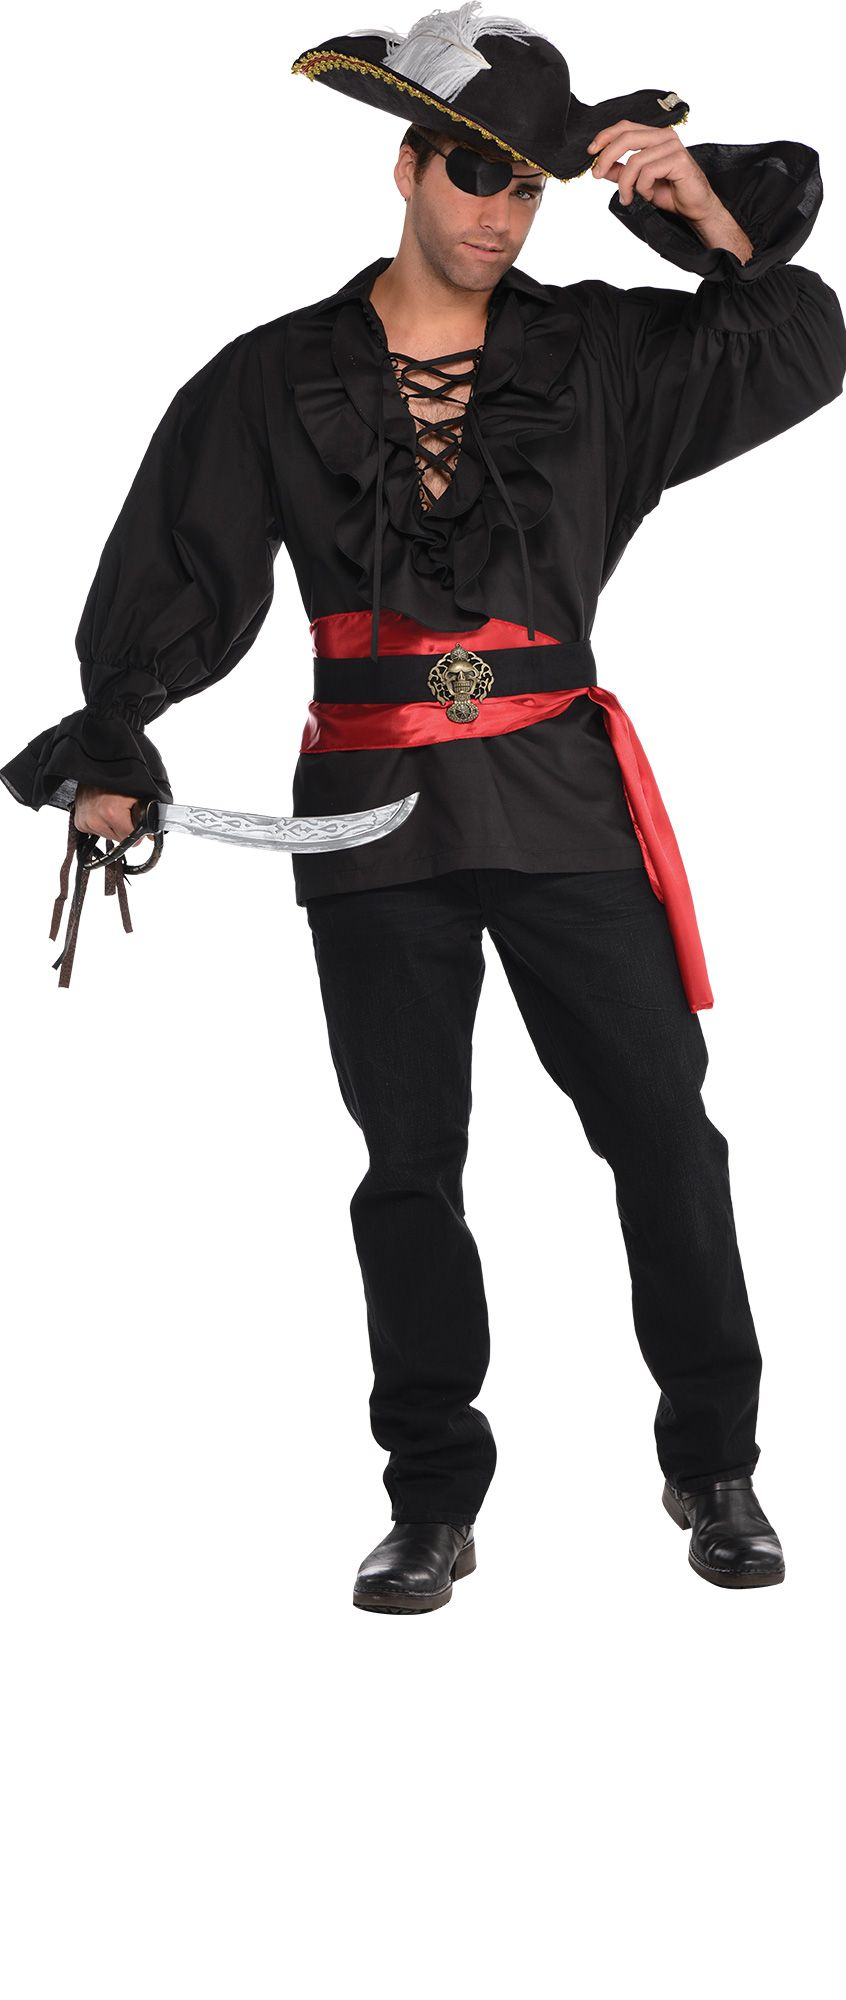 Make Your Costume - Mens Pirate